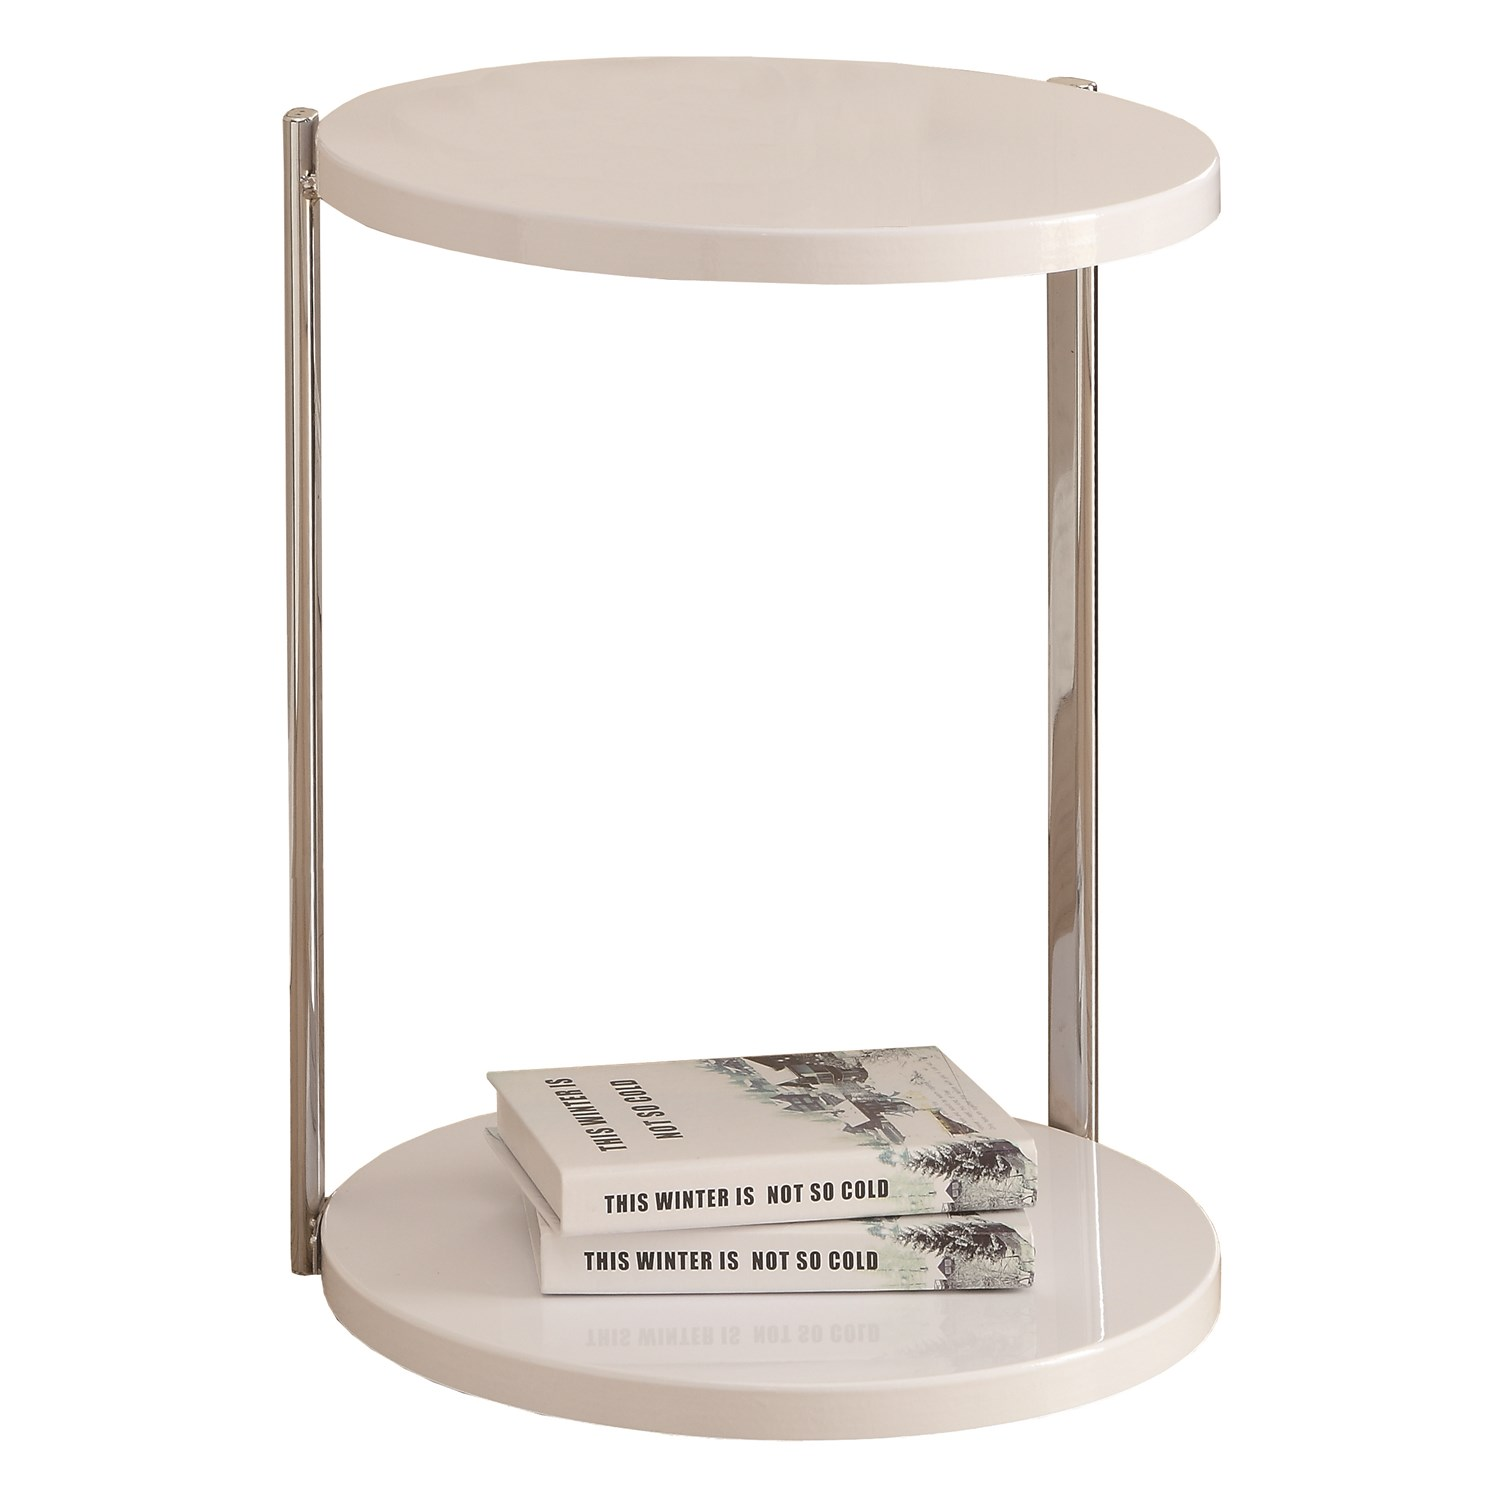 monarch specialties white chrome metal accent table square pedestal legs mirror effect bedside tables zinc nest narrow nightstand round trestle measurements orange lamp center